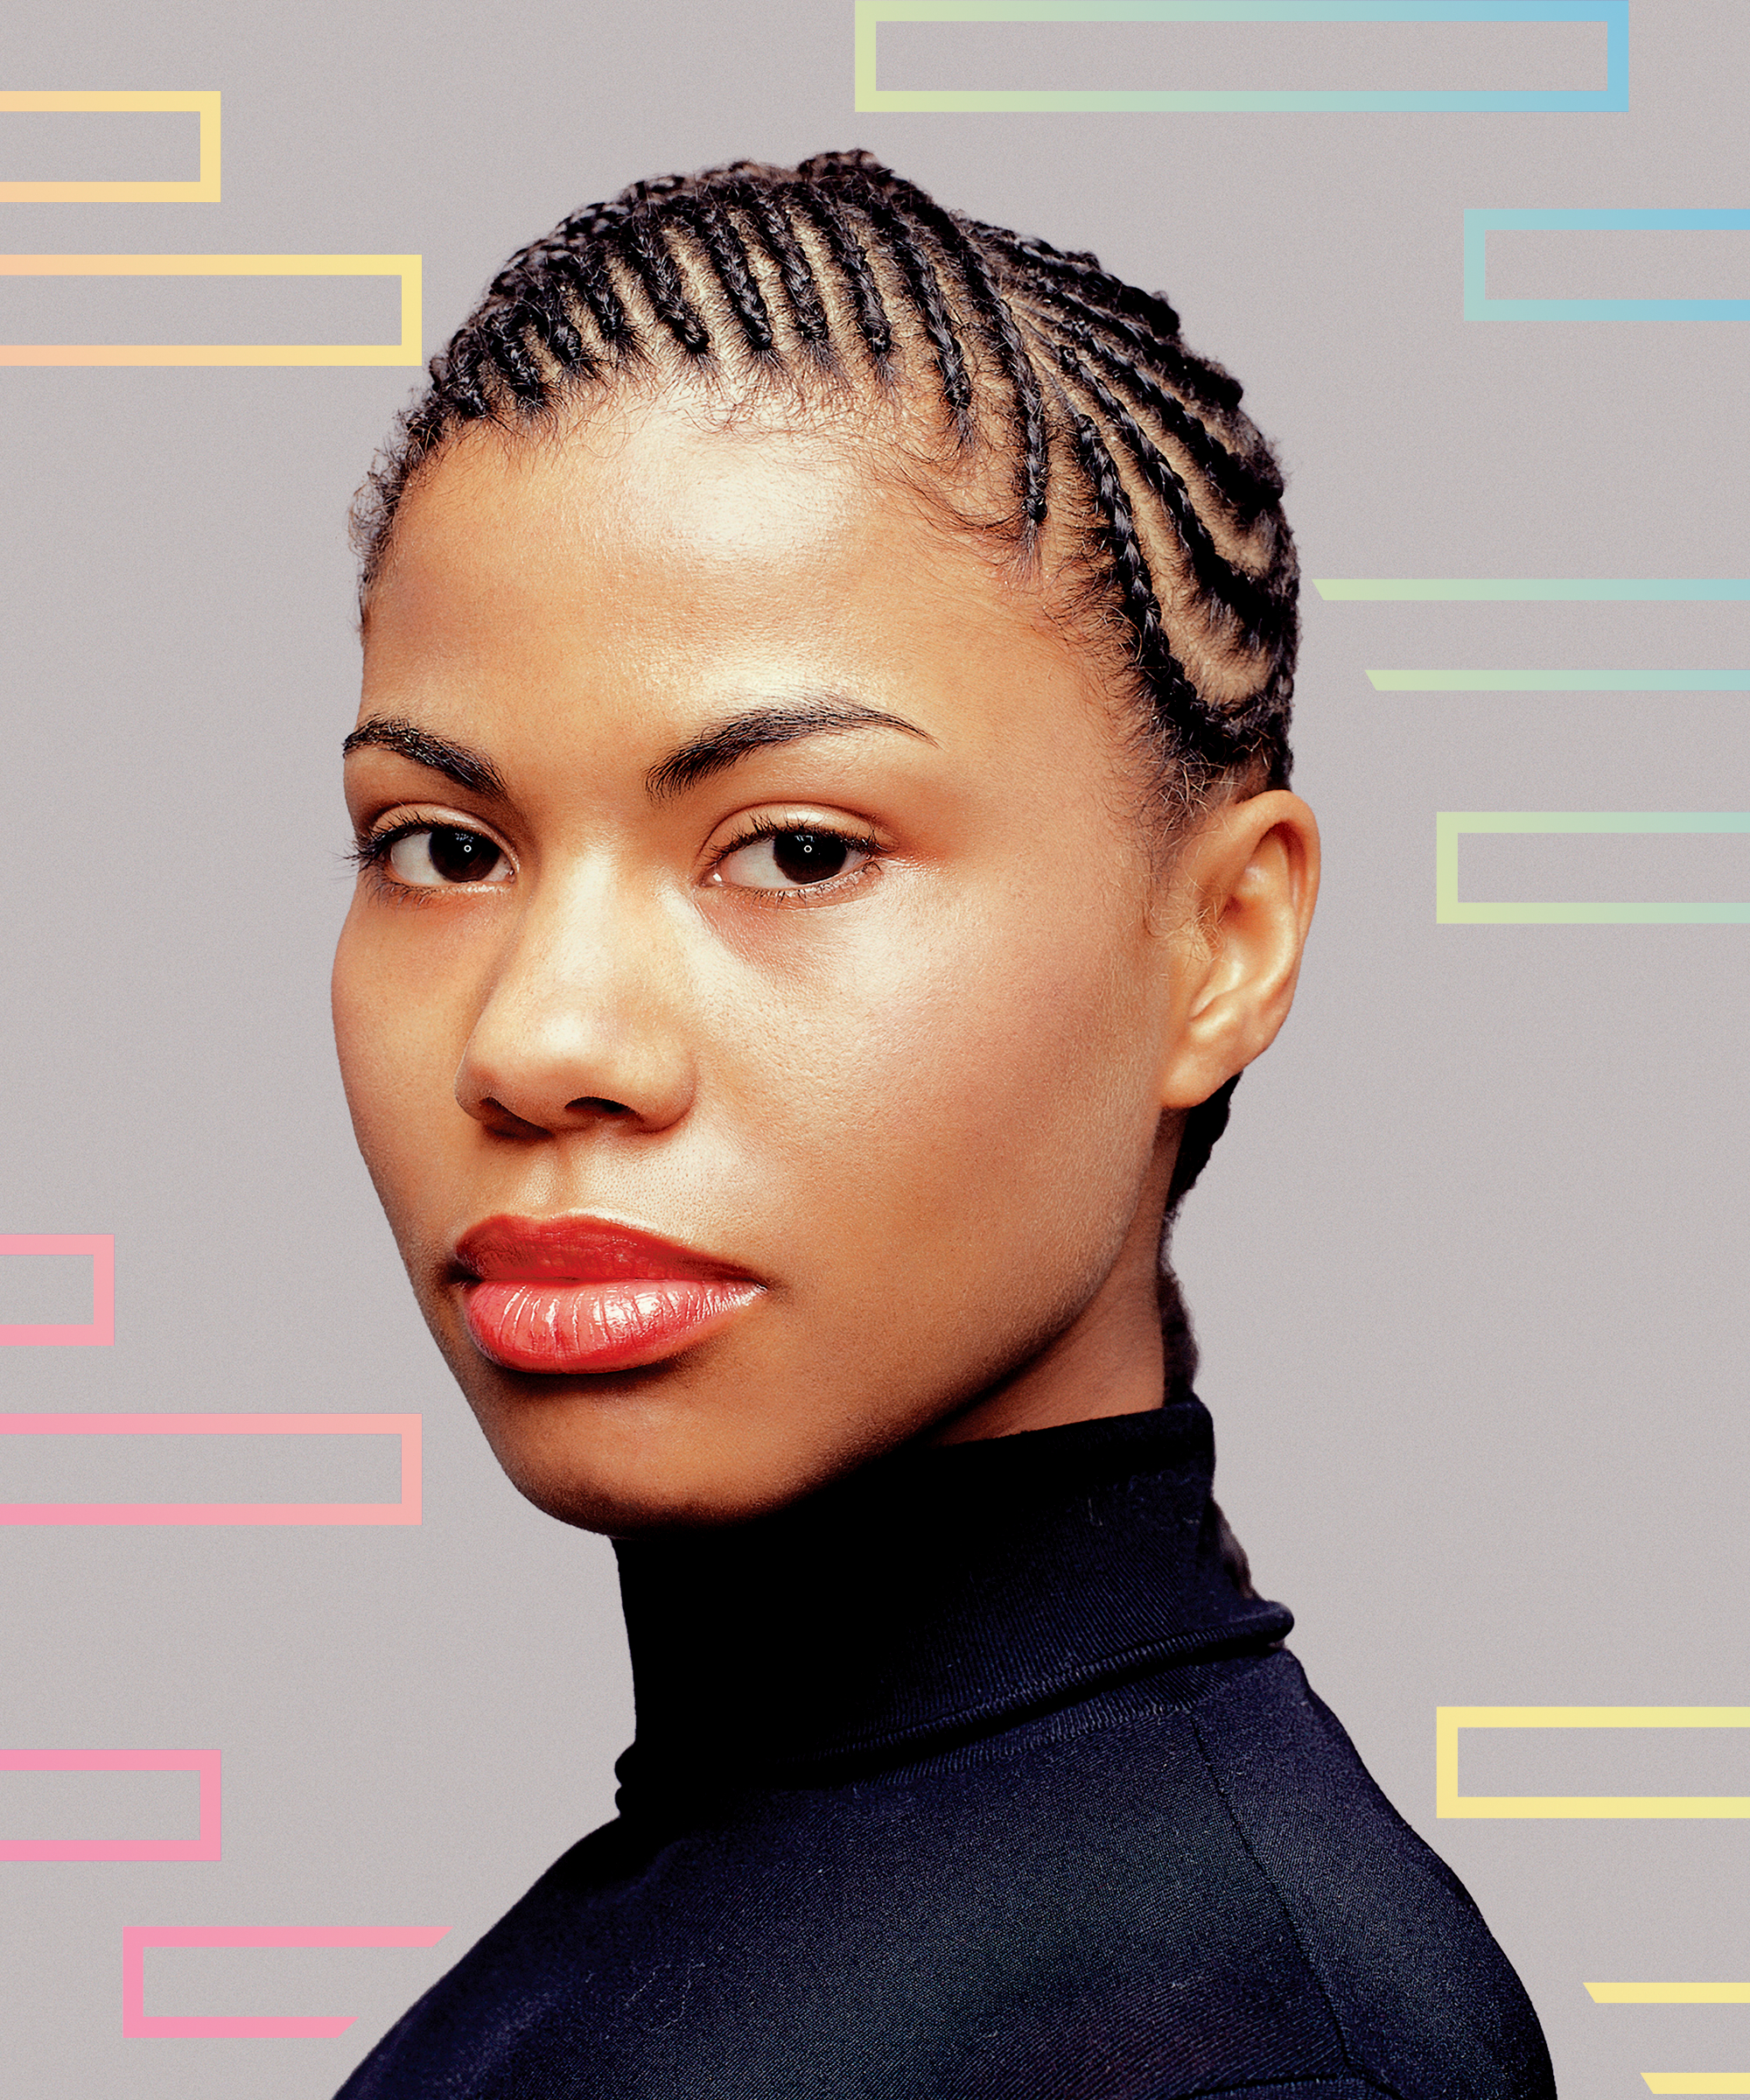 Braids Hairstyles Differences – Cornrows French Crochet With Regard To Well Known Crown Cornrow Braided Hairstyles (View 14 of 20)